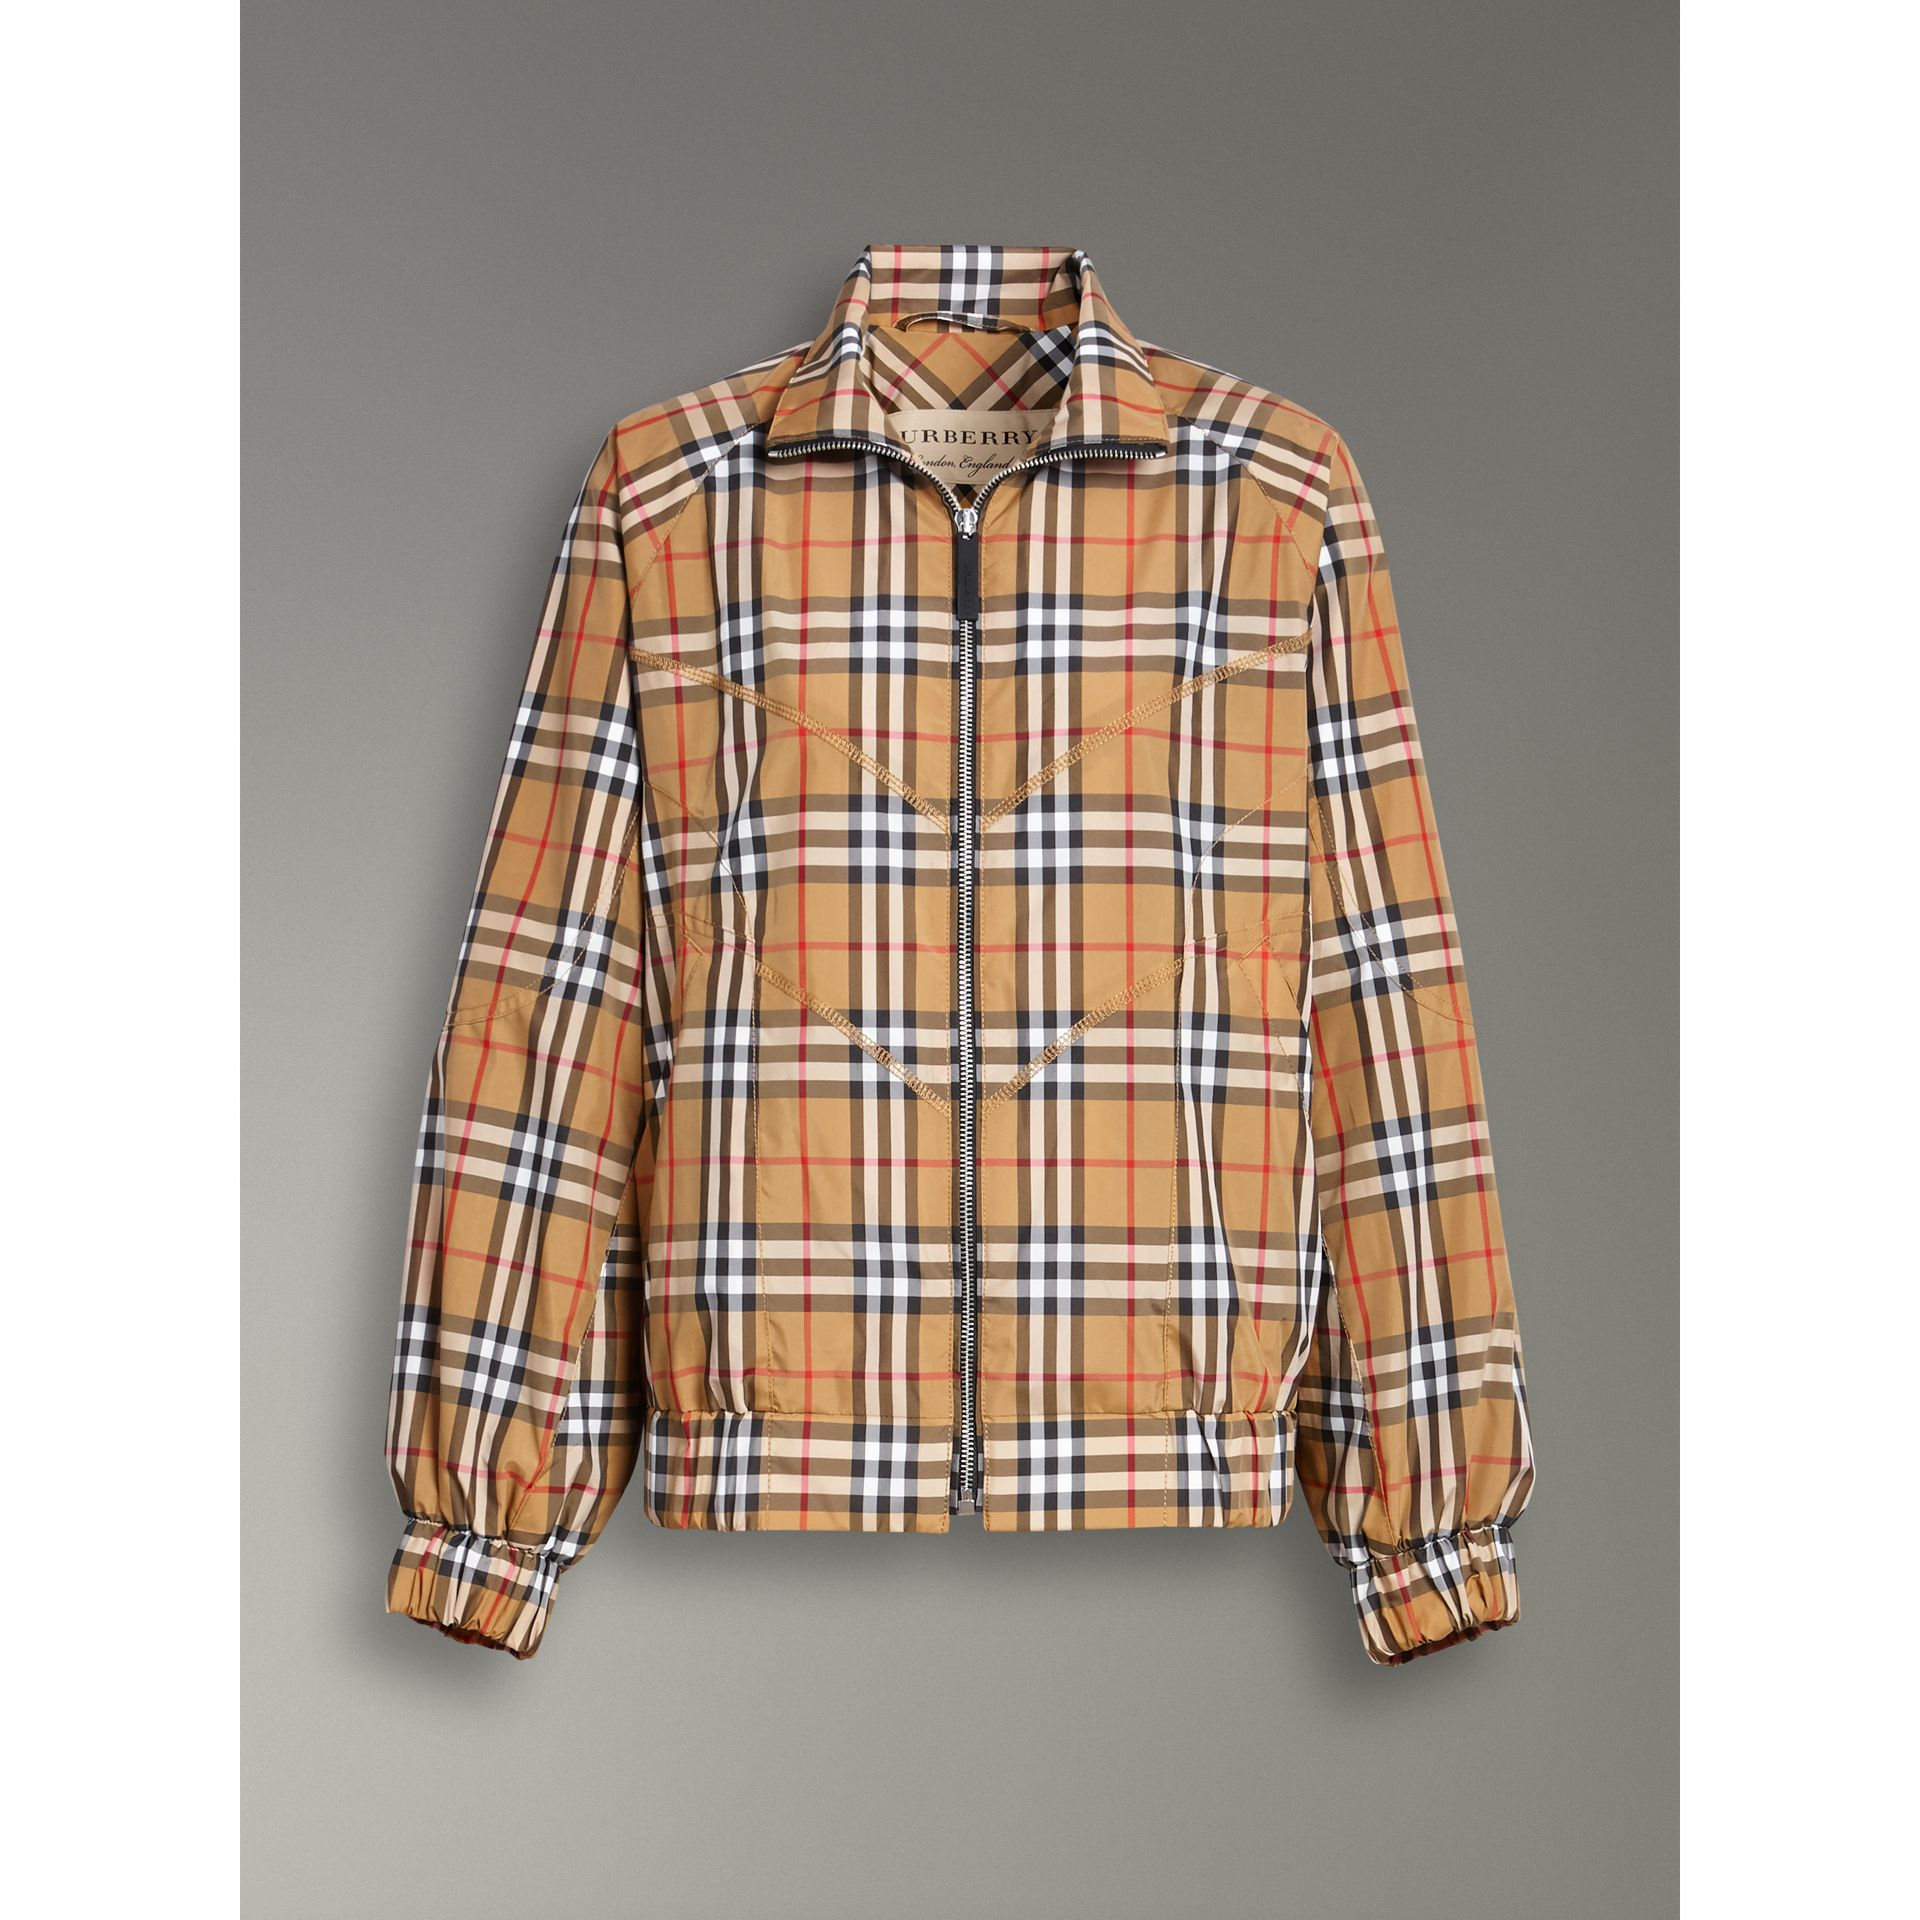 Topstitch Detail Vintage Check Harrington Jacket in Antique Yellow - Women | Burberry - gallery image 3